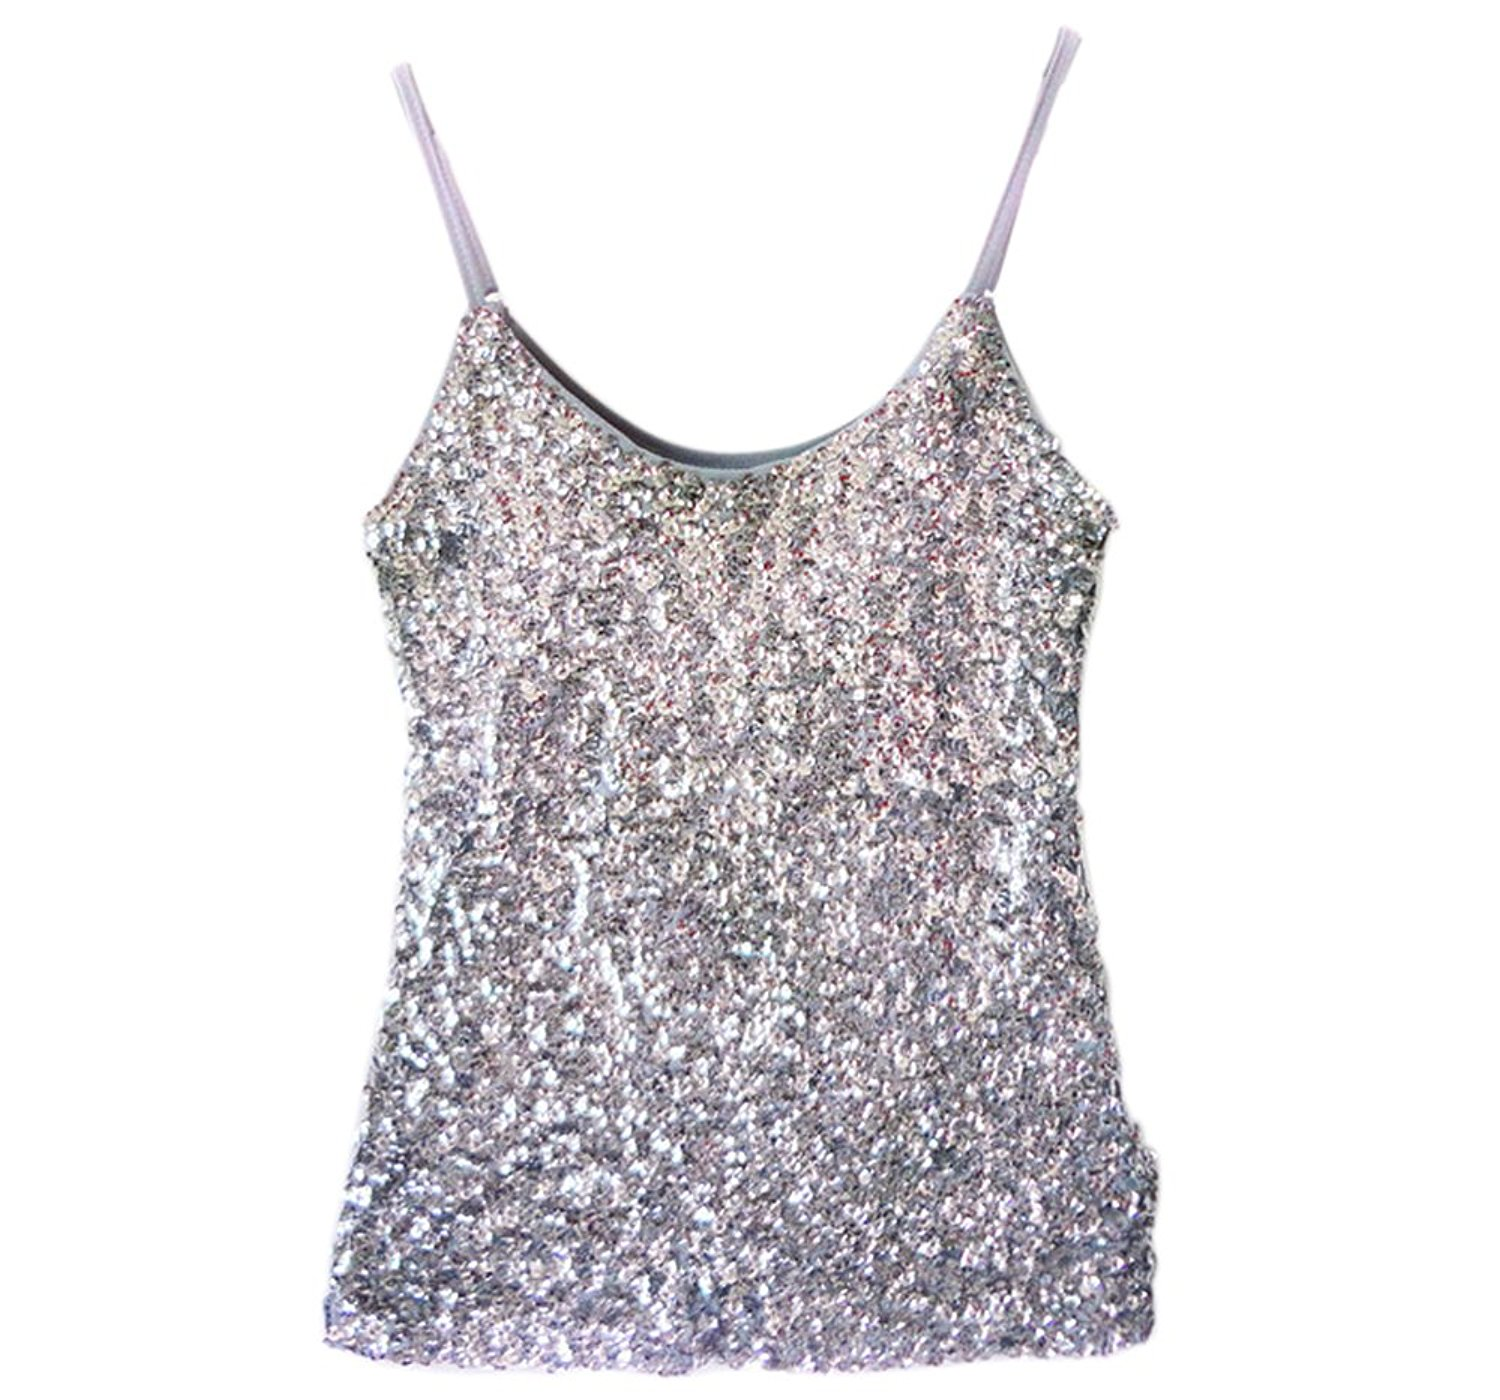 8fb2bb2d1e4 Get Quotations · Whitewed Glitter Sparkle Paillettes Sequin Juniors Tank  Stage Tops Shirt Women